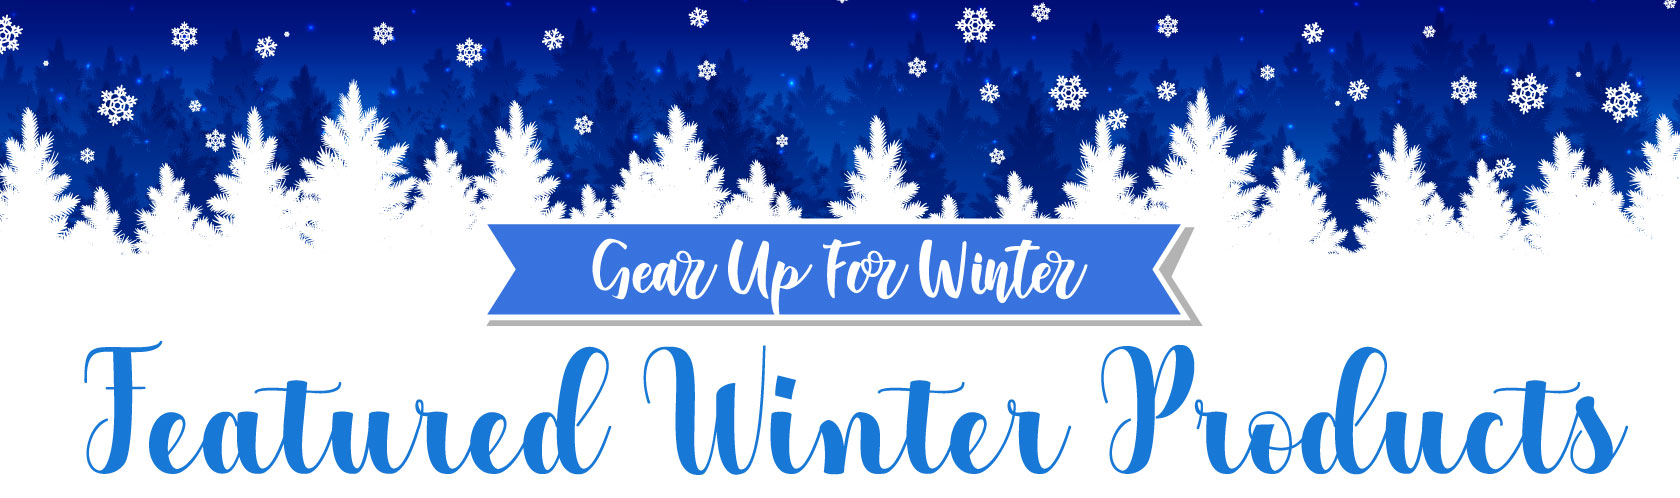 Gear Up For Winter: Featured Winter Products